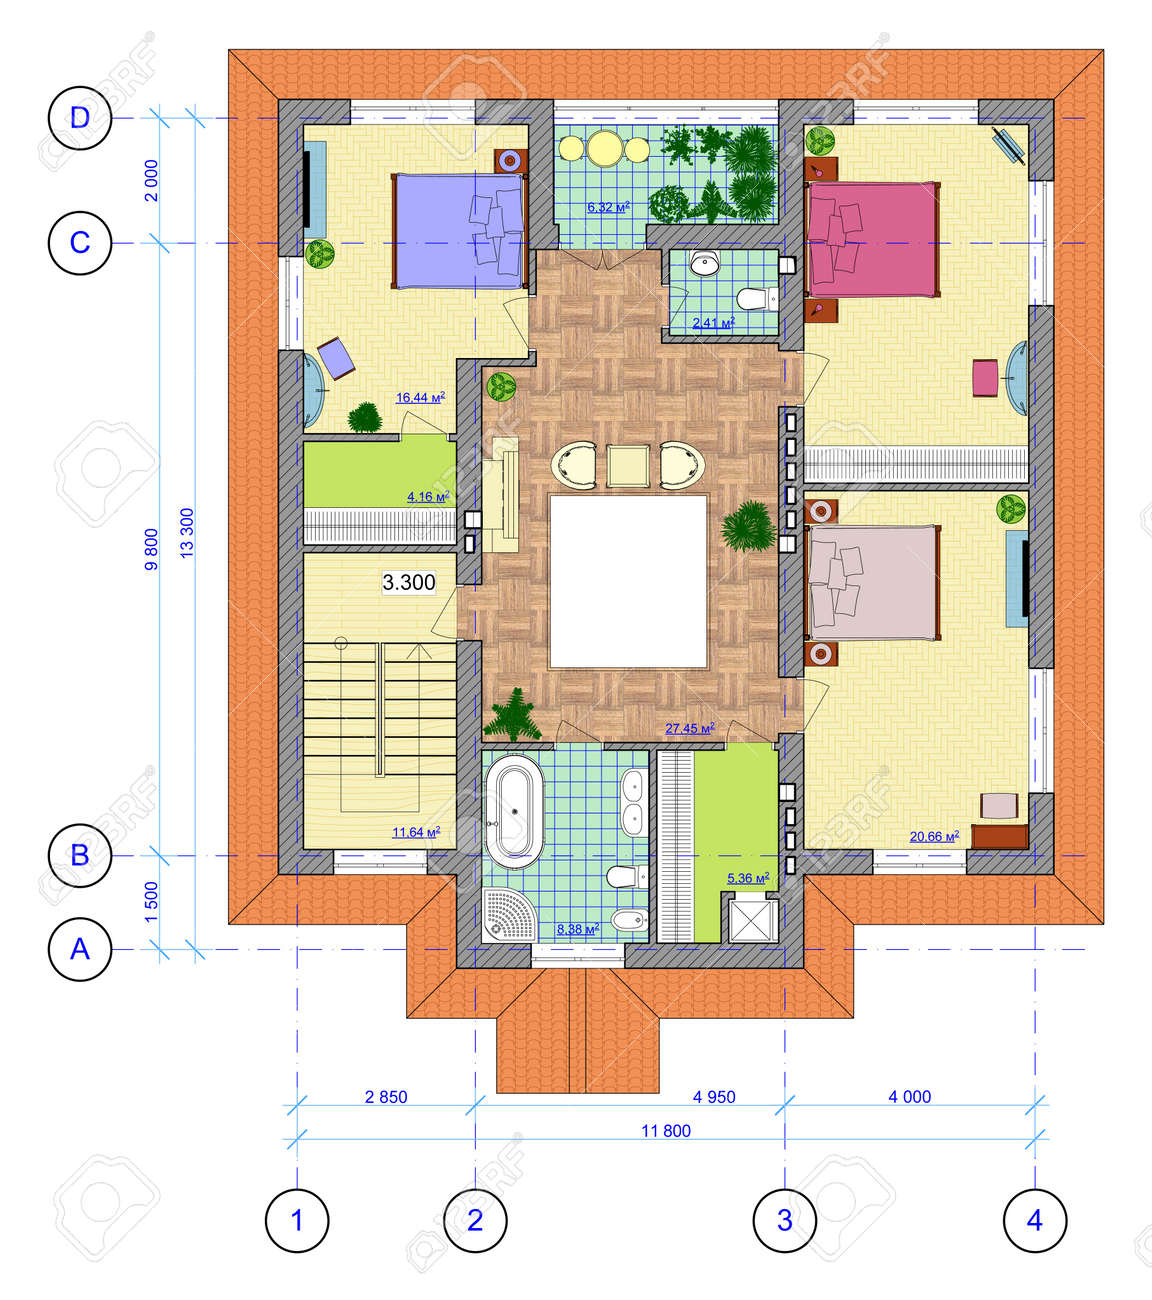 House plan with furniture - House Plans With Furniture Layout